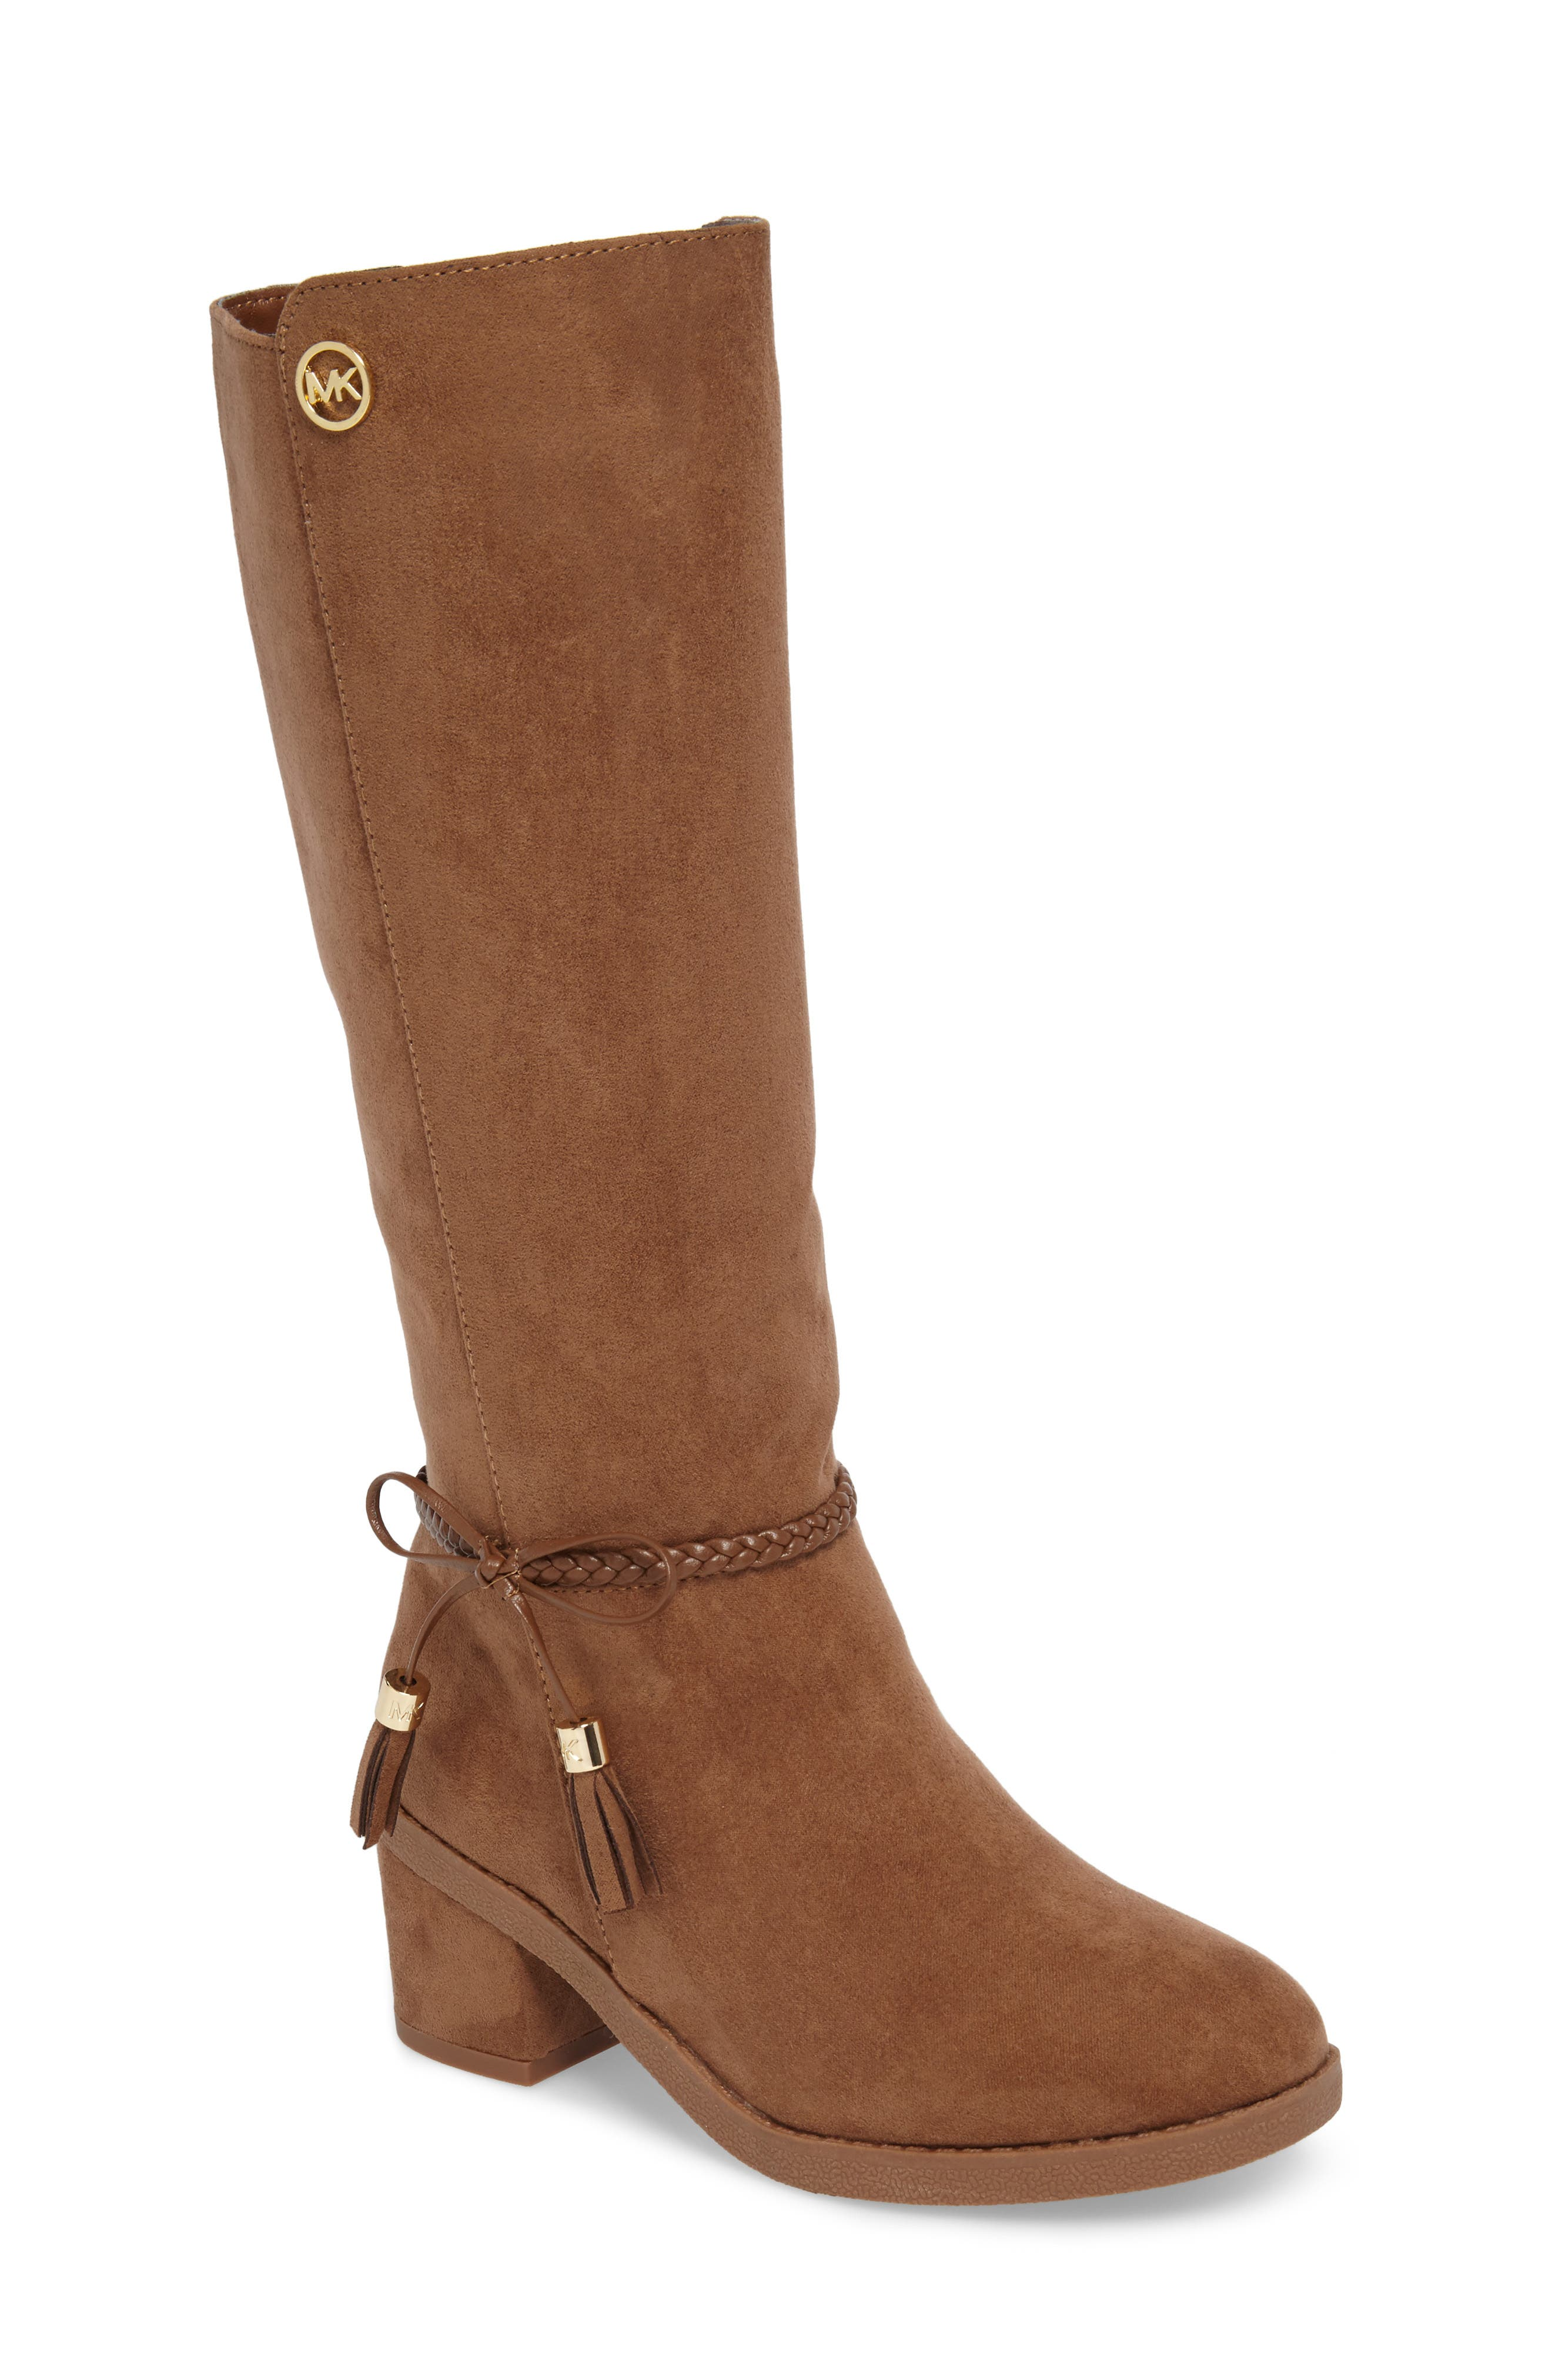 Fawn Simmy Riding Boot,                             Main thumbnail 1, color,                             Caramel Faux Suede